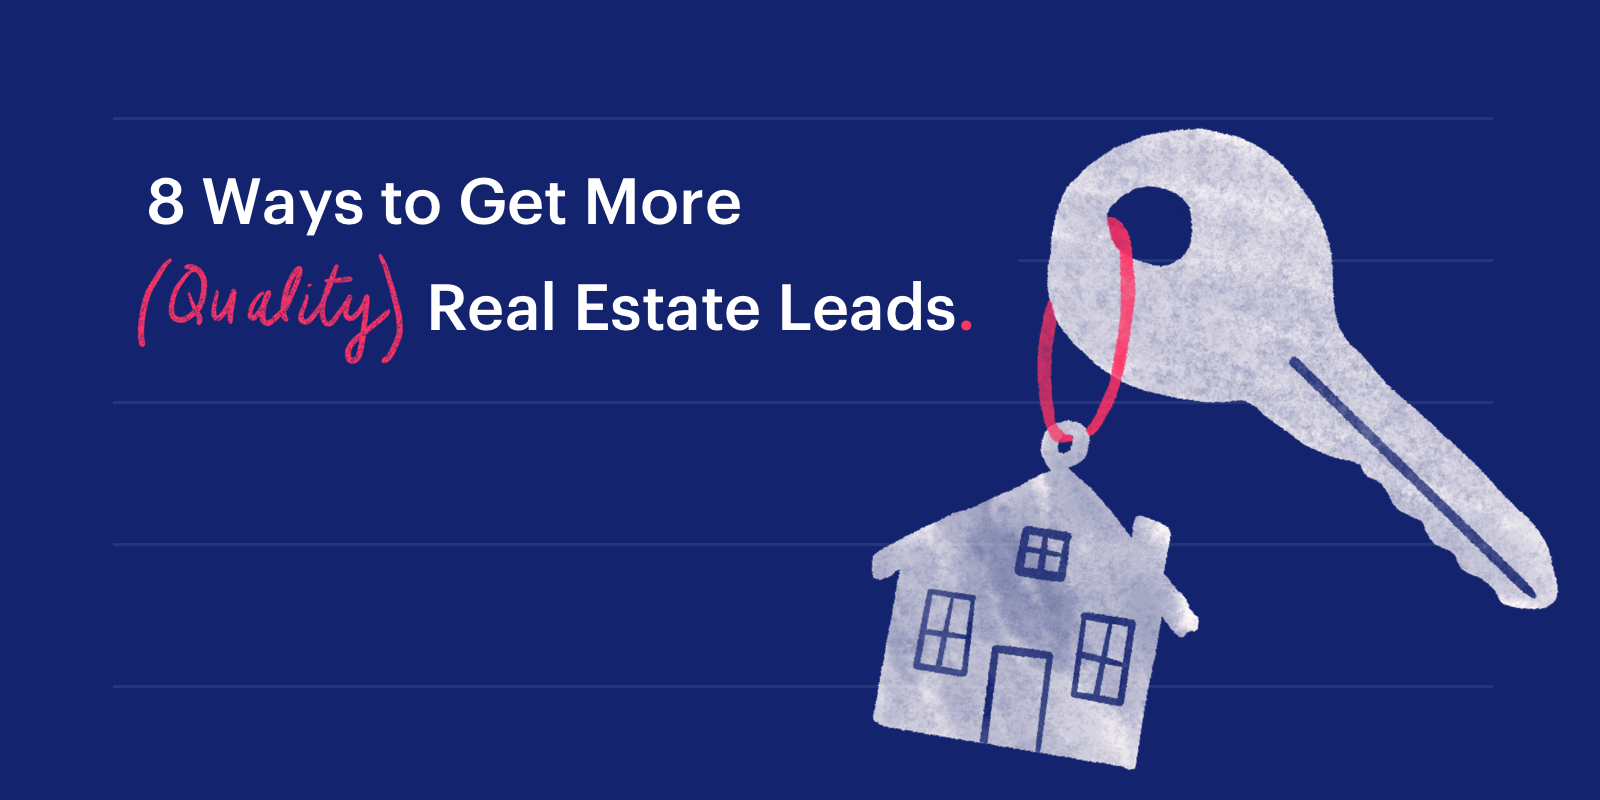 8 Ways to Get More (Quality) Real Estate Leads